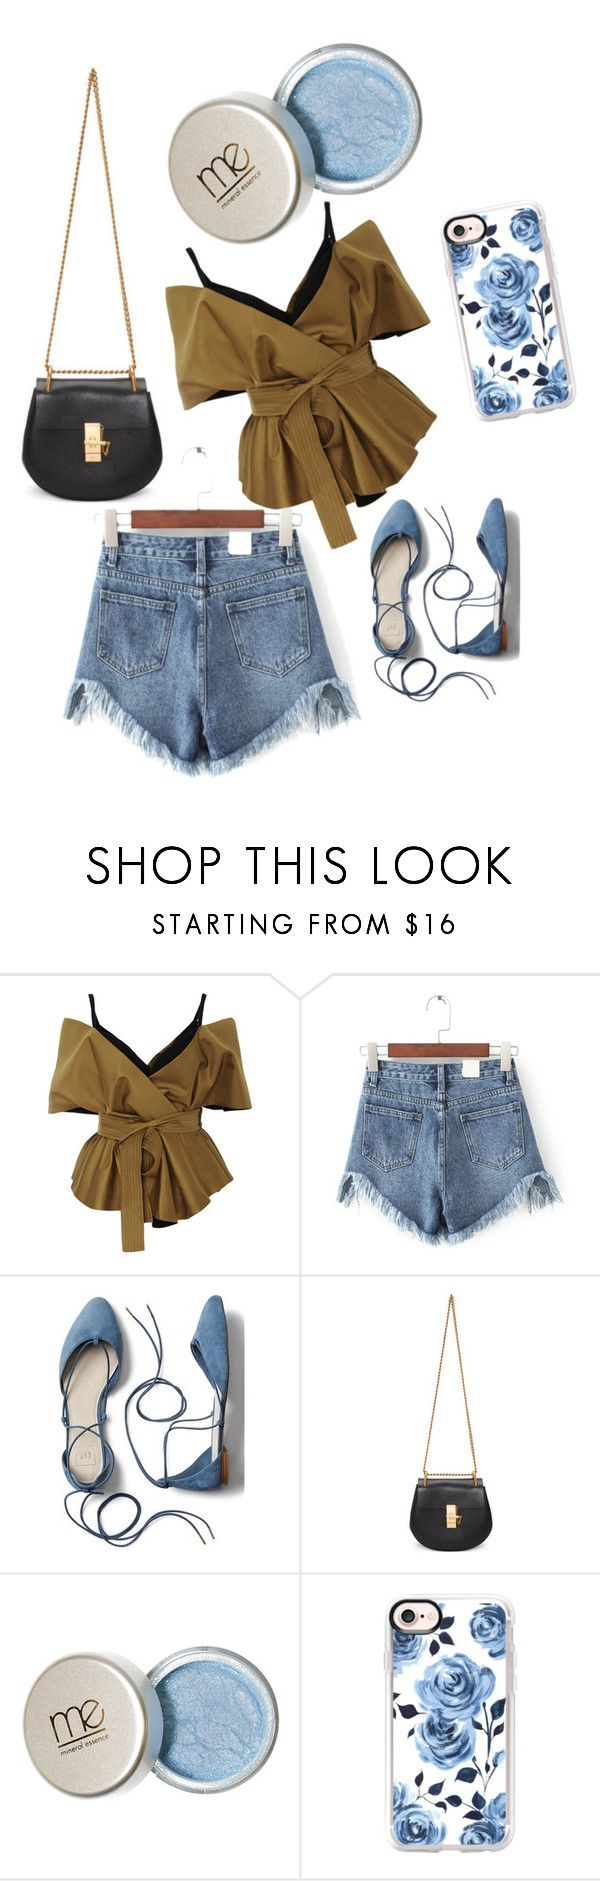 """""""baju cantik hijau lumut with jeans"""" by kristyagaki ❤ liked on Polyvore featuring Acler, WithChic, Gap, Chloé and Casetify"""